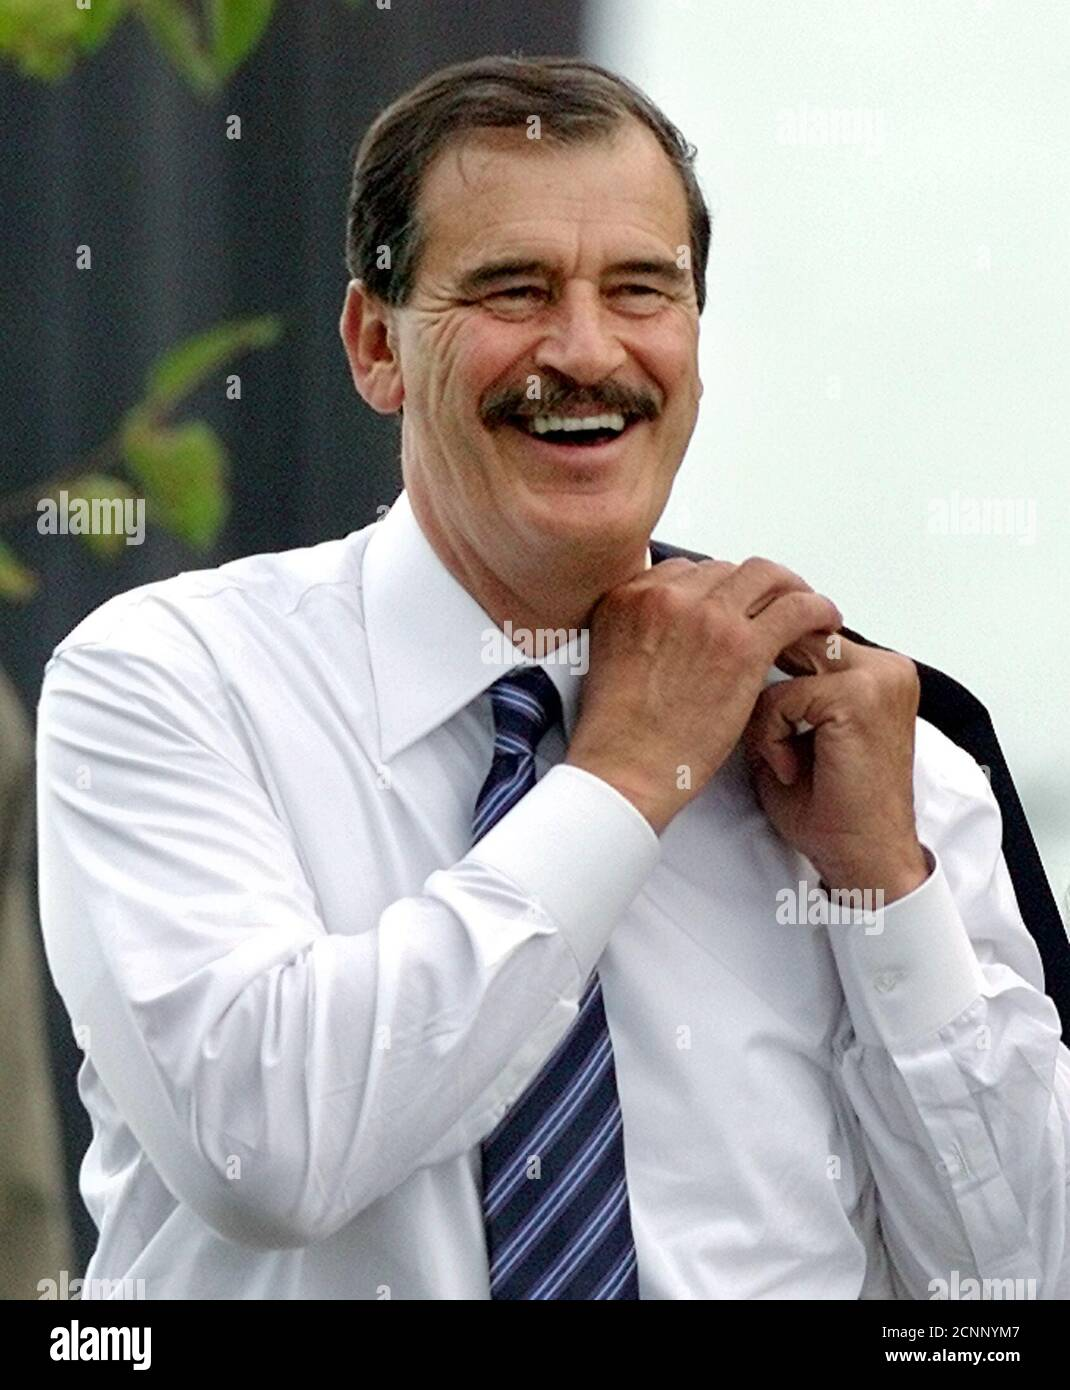 Mexican President Vicente Fox laughs after his arrival at Quintos de Mora near Toledo, where he was received by Spanish Prime Minister Jose Maria Aznar October 13, 2001. Fox is on a four-day official state visit to Spain. REUTERS/Andrea Comas  AC Stock Photo